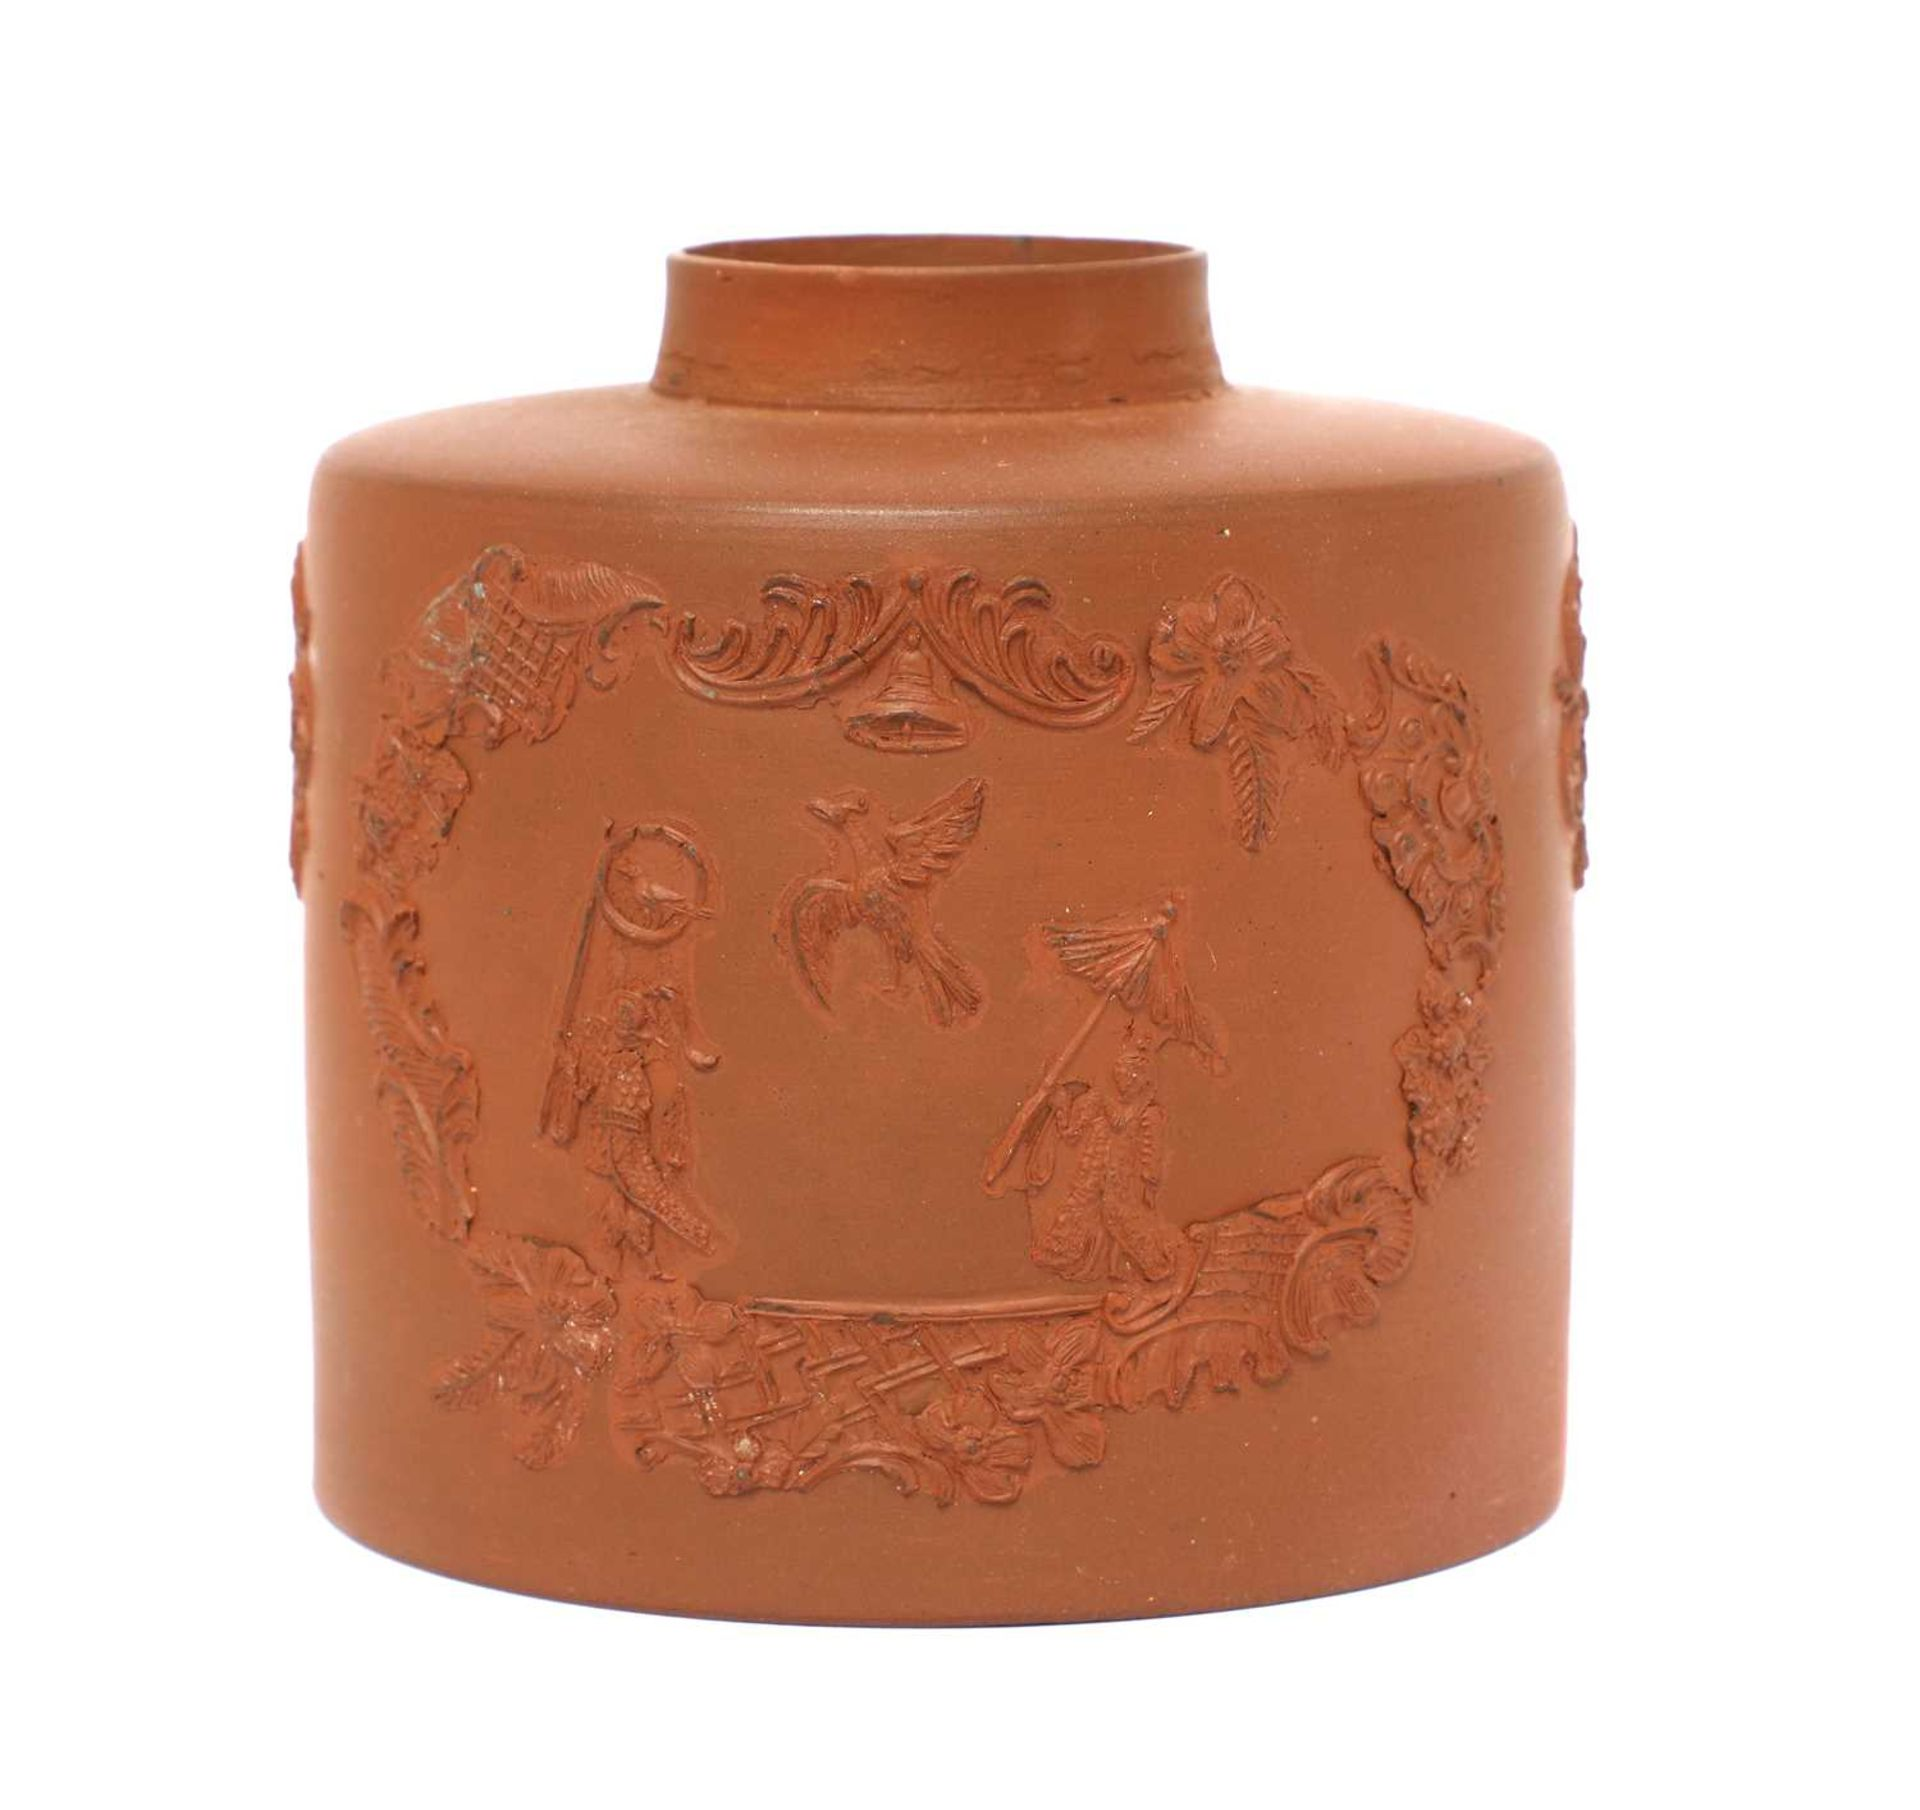 A Staffordshire redware cylindrical tea canister,